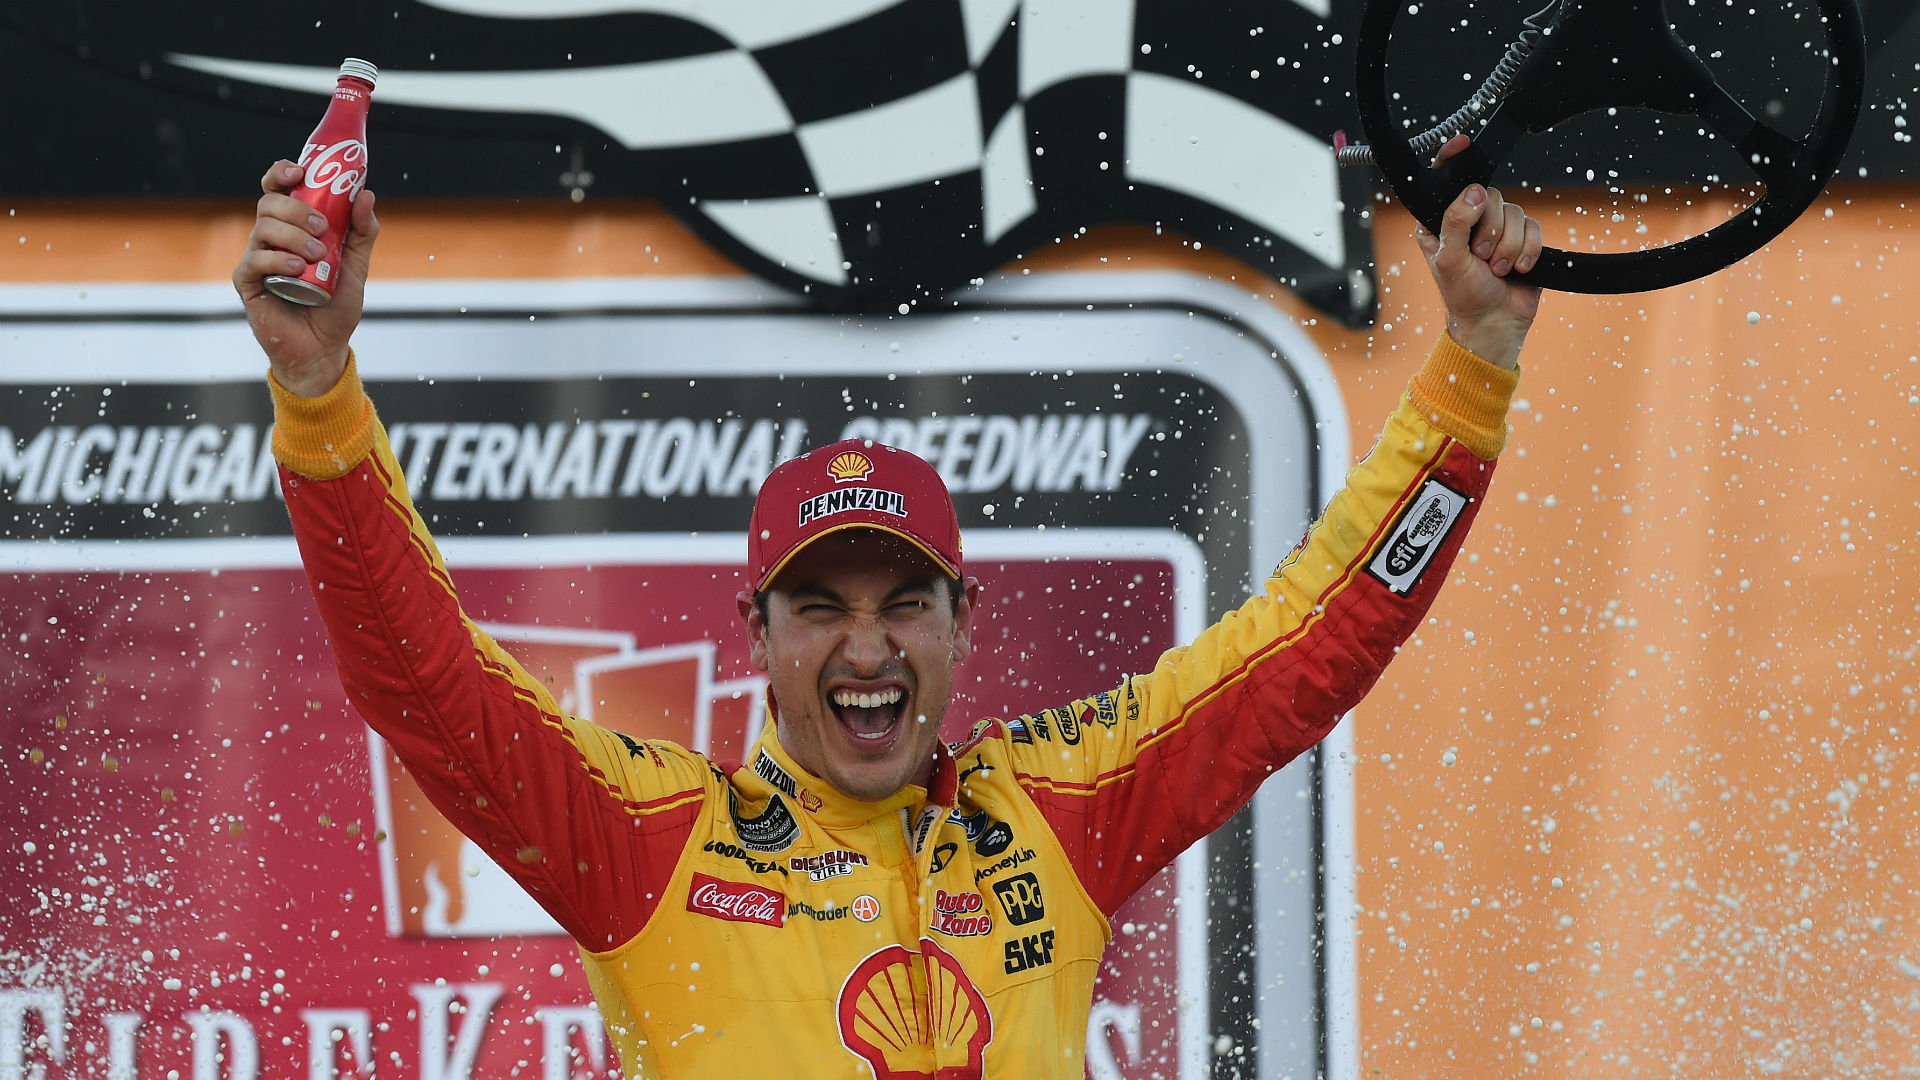 NASCAR results at Michigan: Joey Logano gets second win of season in overtime finish